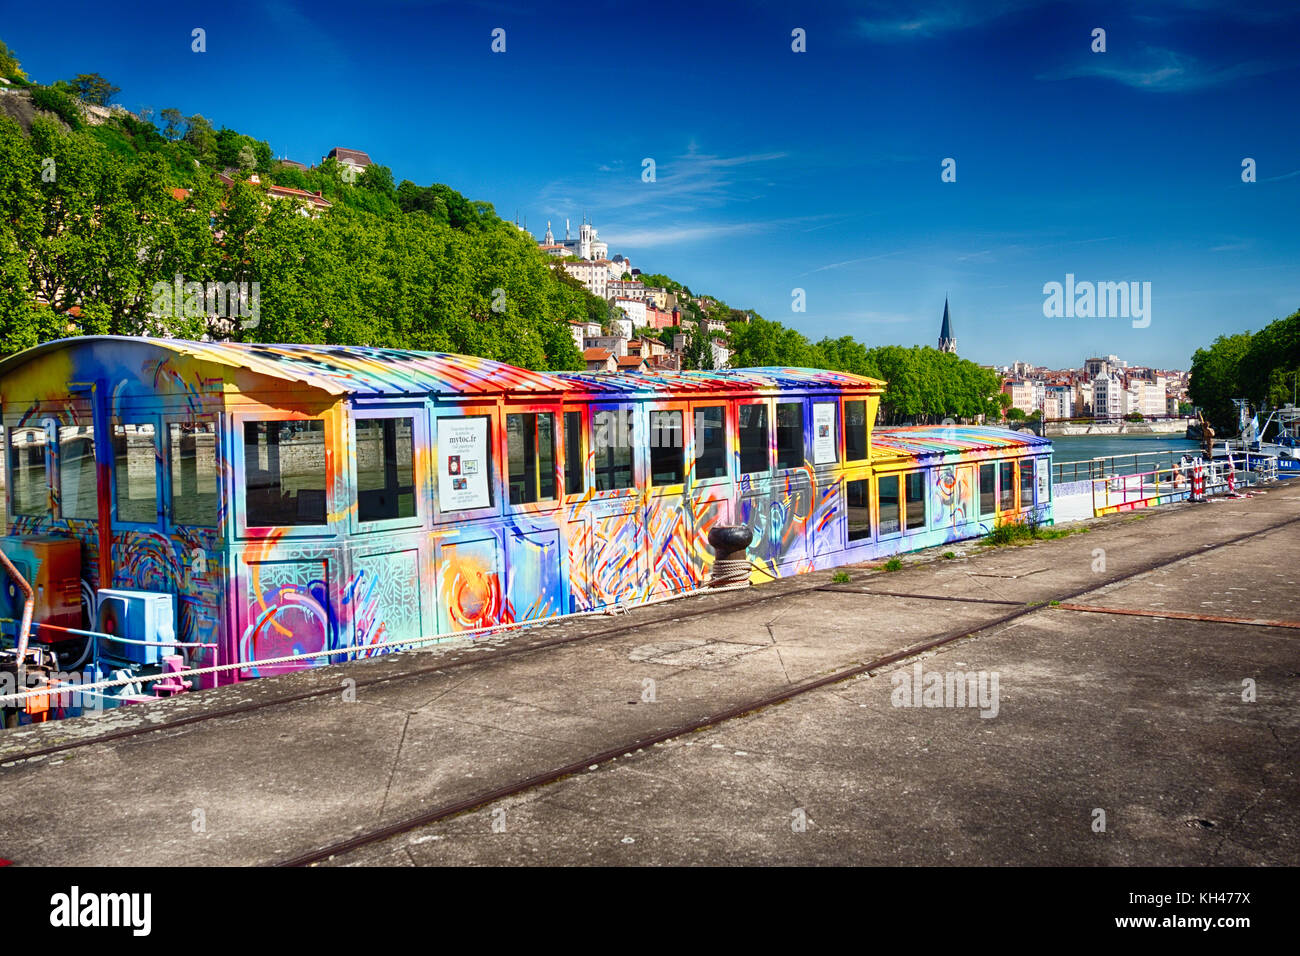 Colorful Art Project Barge Moored on The Saone River, Lyon France - Stock Image